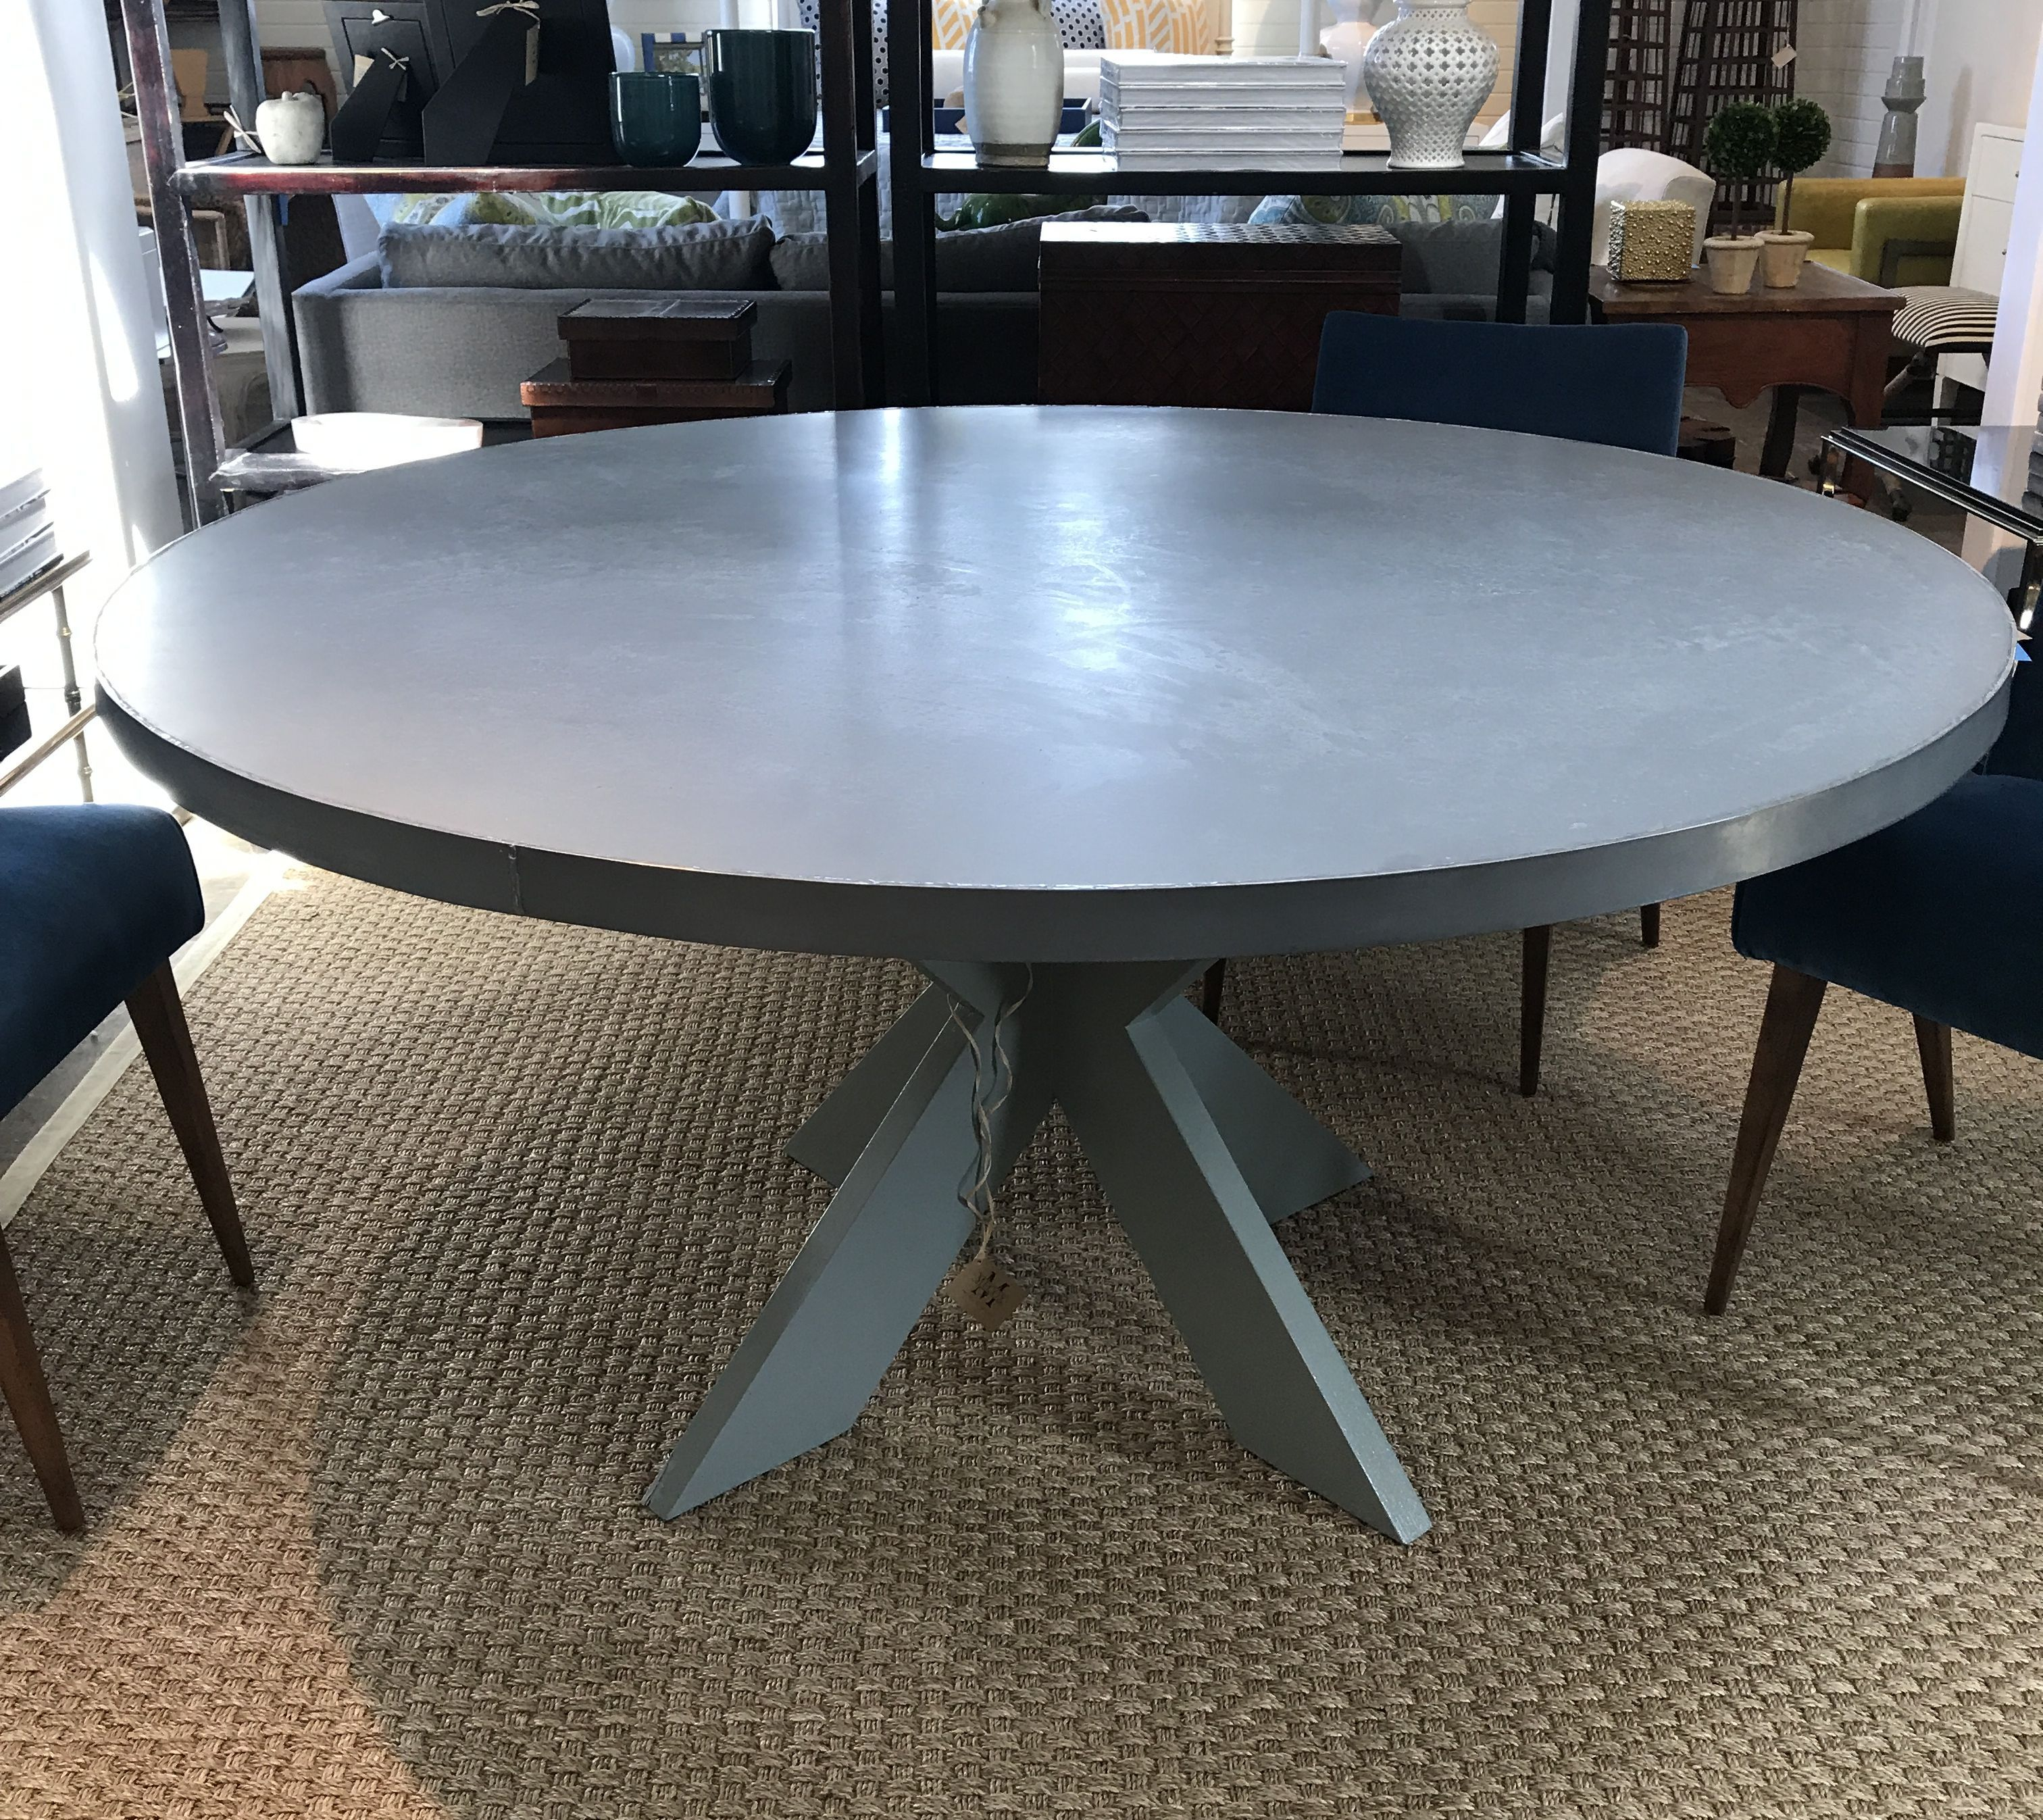 Custom Round Dining Table Smooth Zinc Top With Nail Heads Surrounding Side Of Grey Lacquered Cross Base Sizes Available Can Be Made For Outdoor